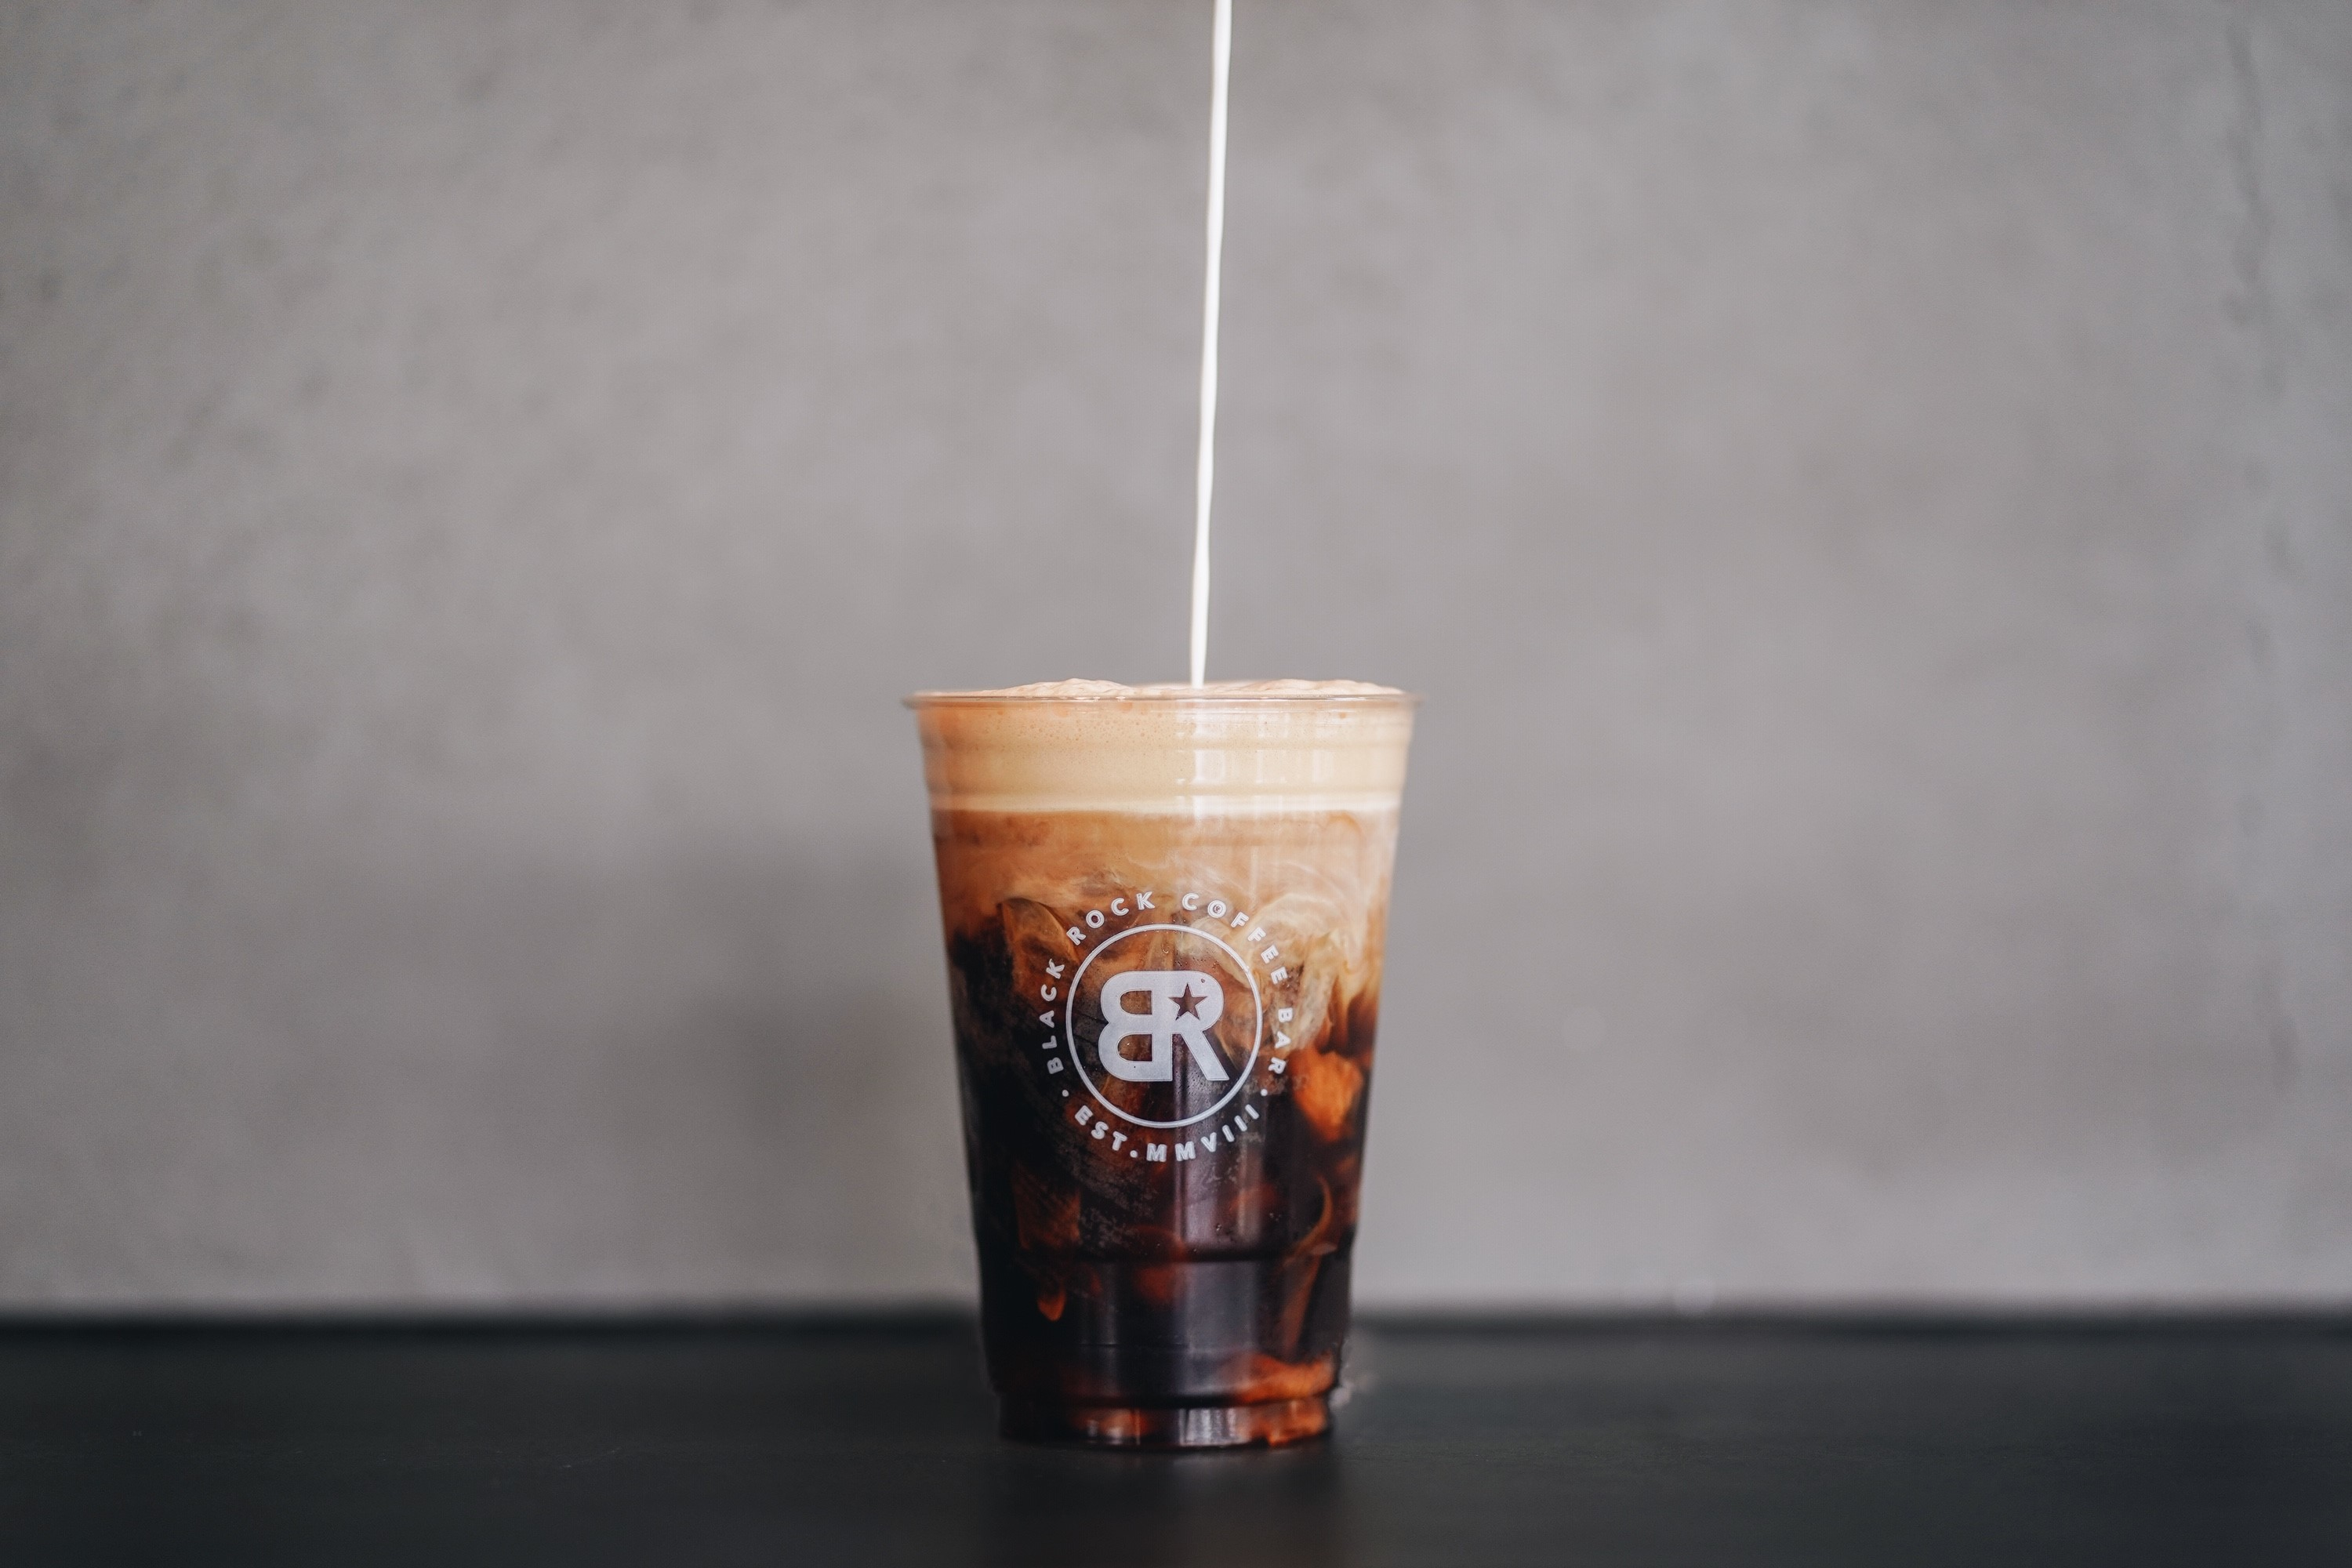 A coffee drink from Black Rock Coffee